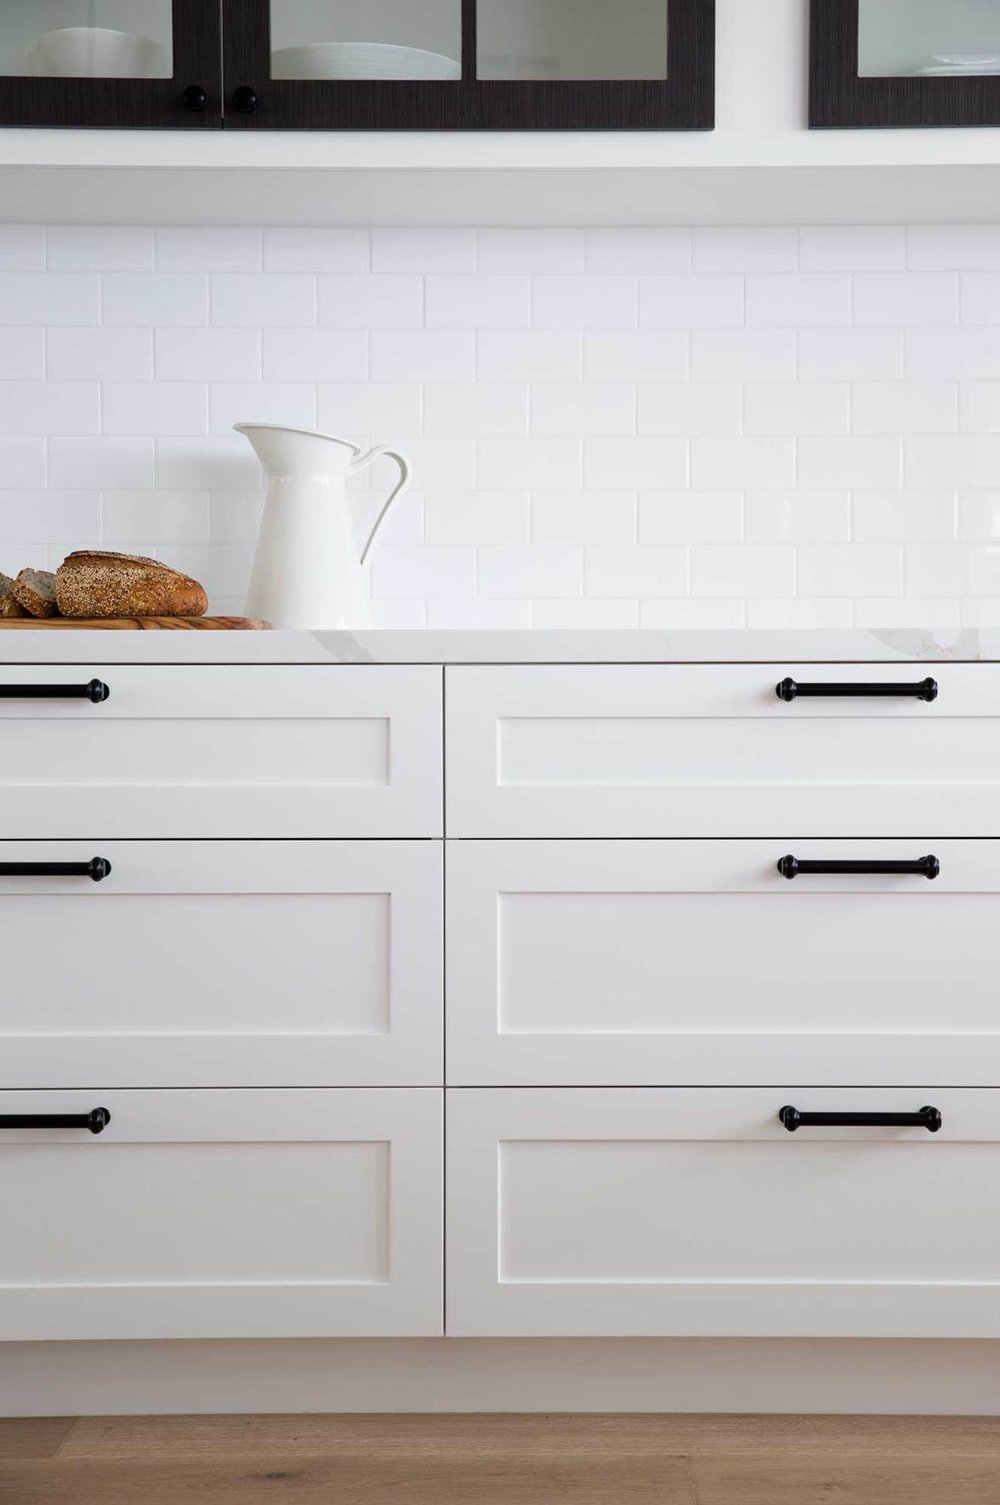 White Shaker style drawers with black bar handles in this classic kitchen |  MorrisCo Design